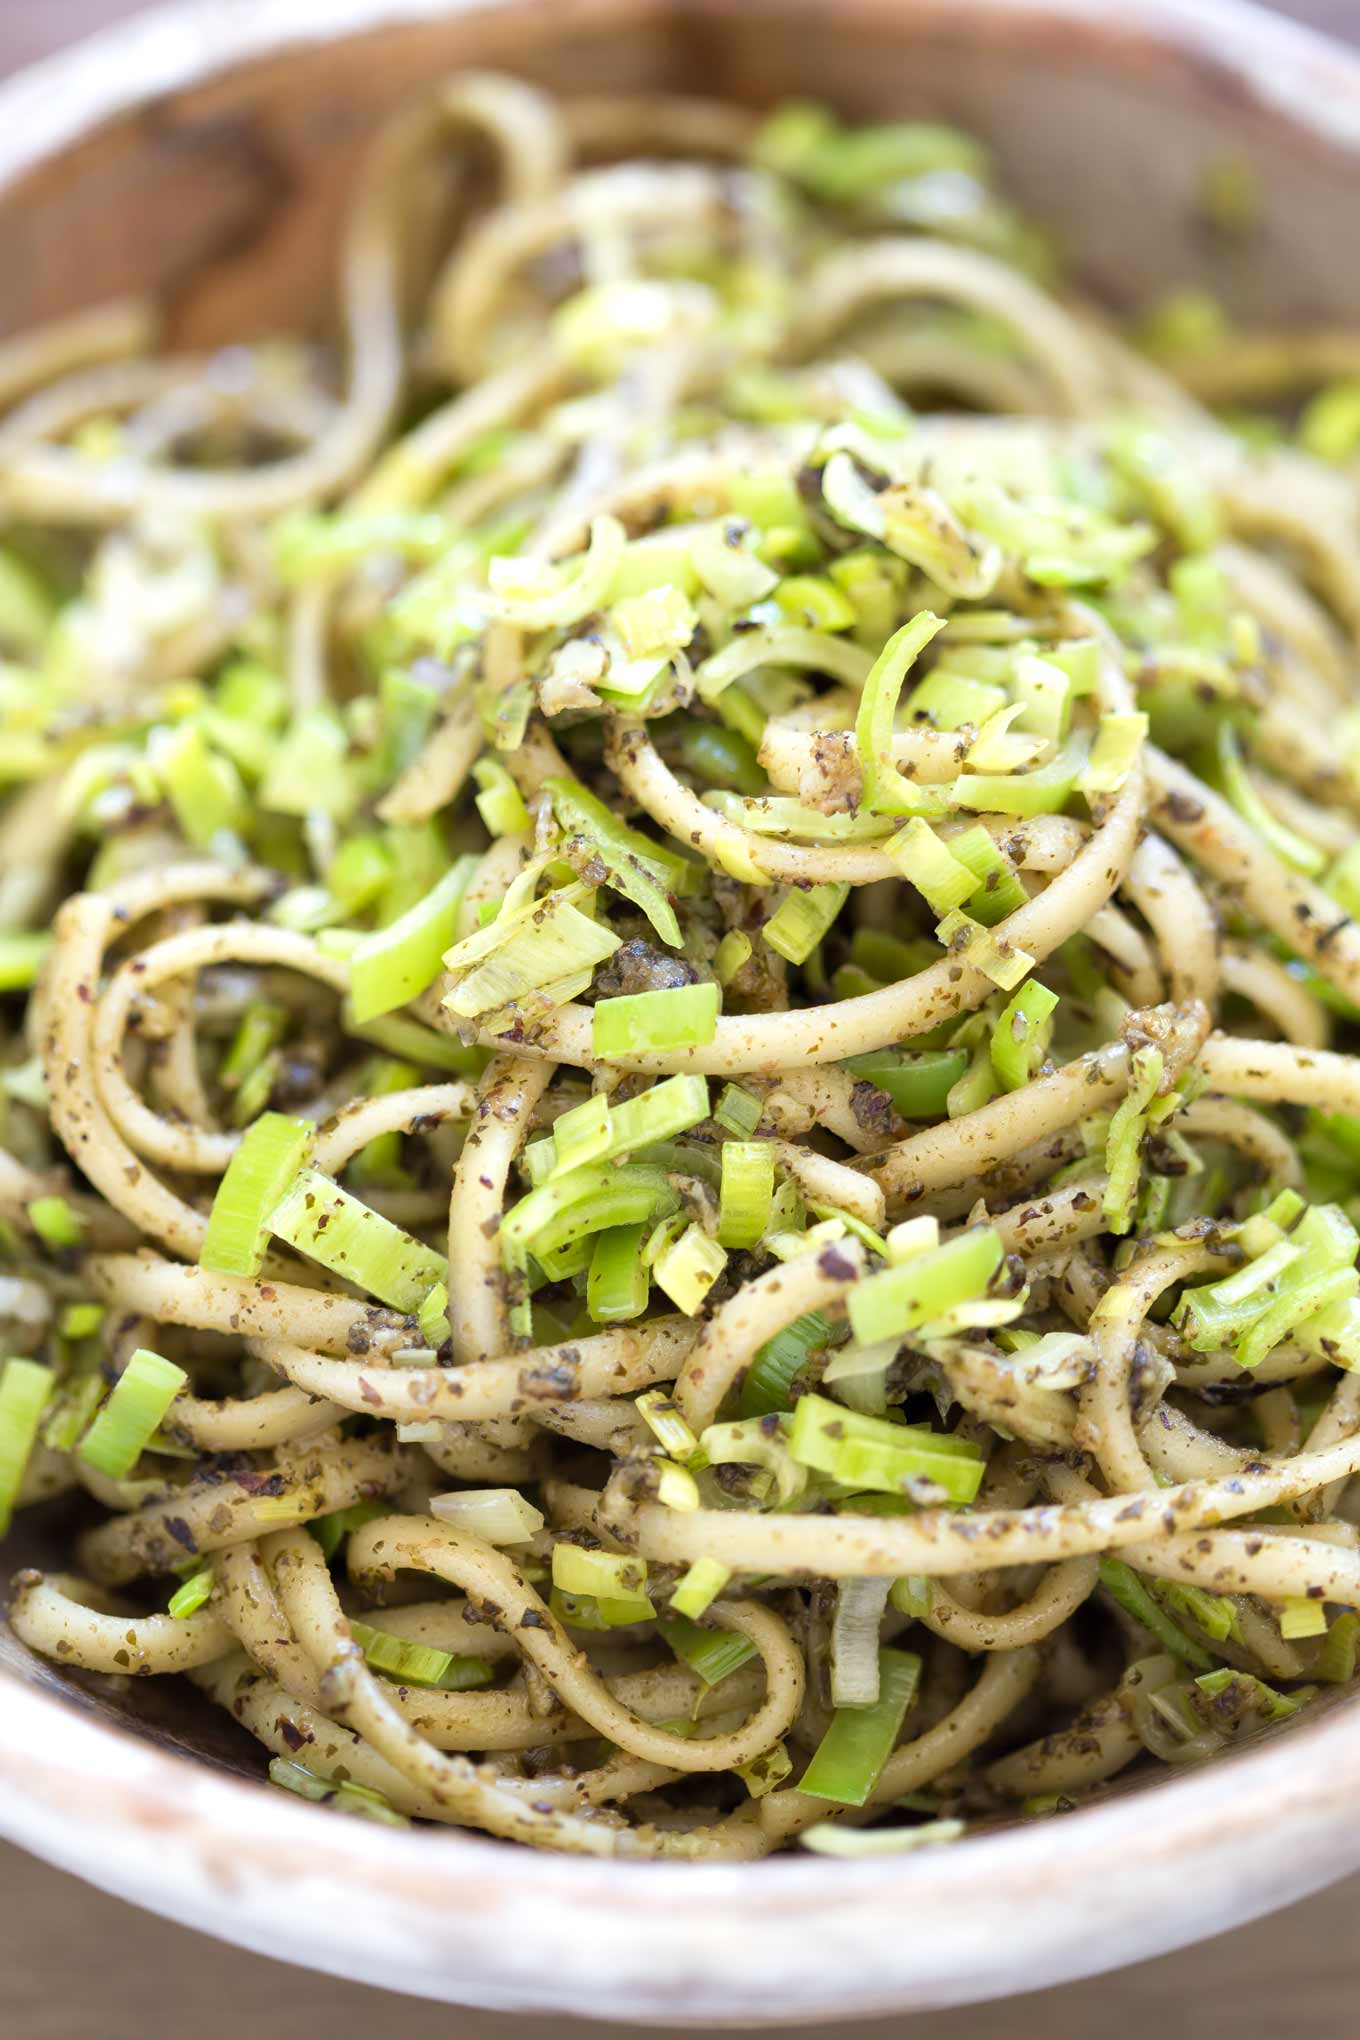 Leek and Pesto Fettuccine - easy, vegan recipe you can turn into a beautiful meal in only 15 minutes. Delicious and budget friendly.